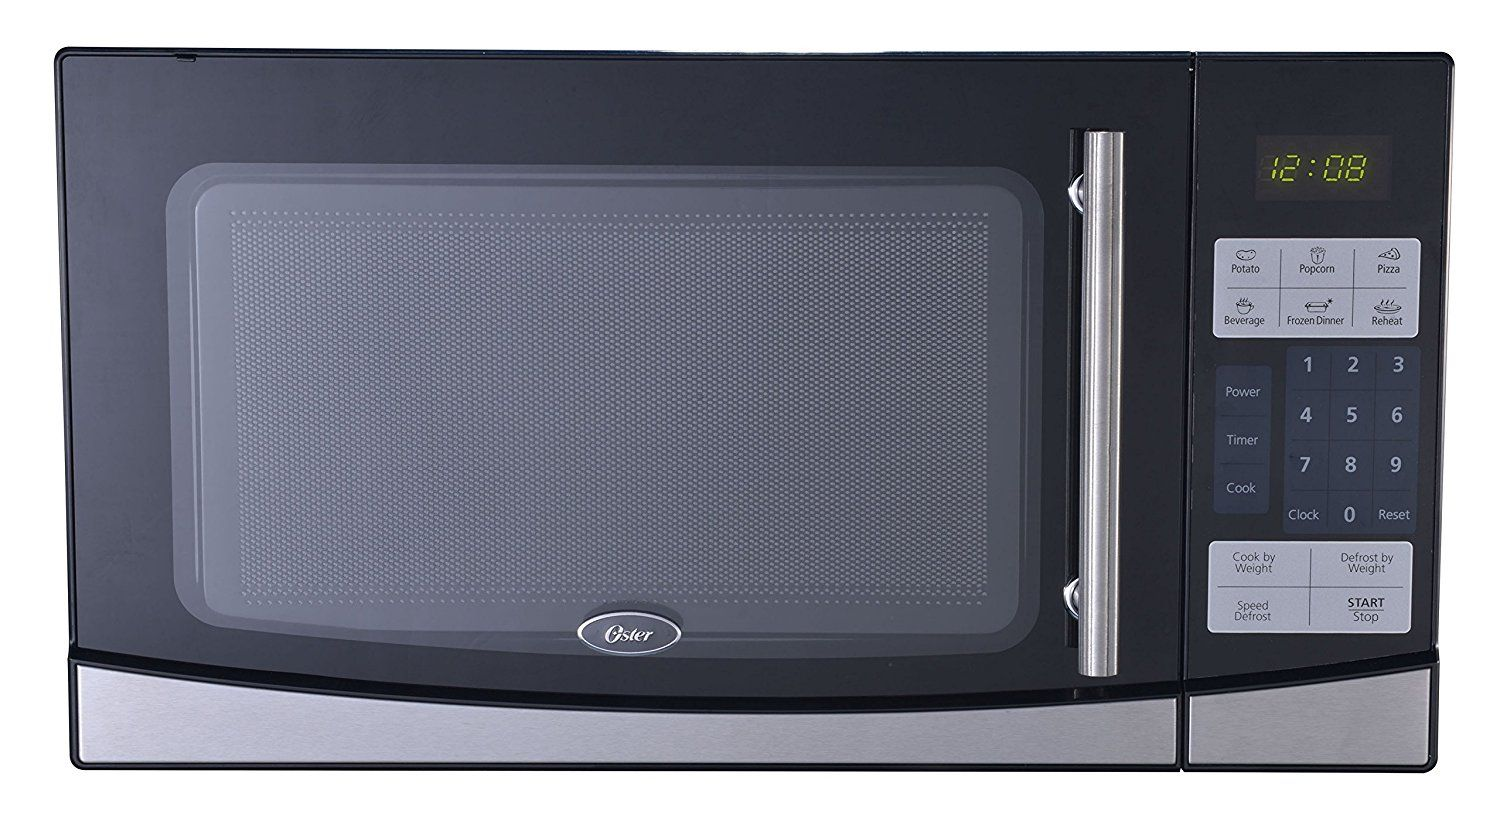 Cubic Foot Digital Microwave Oven